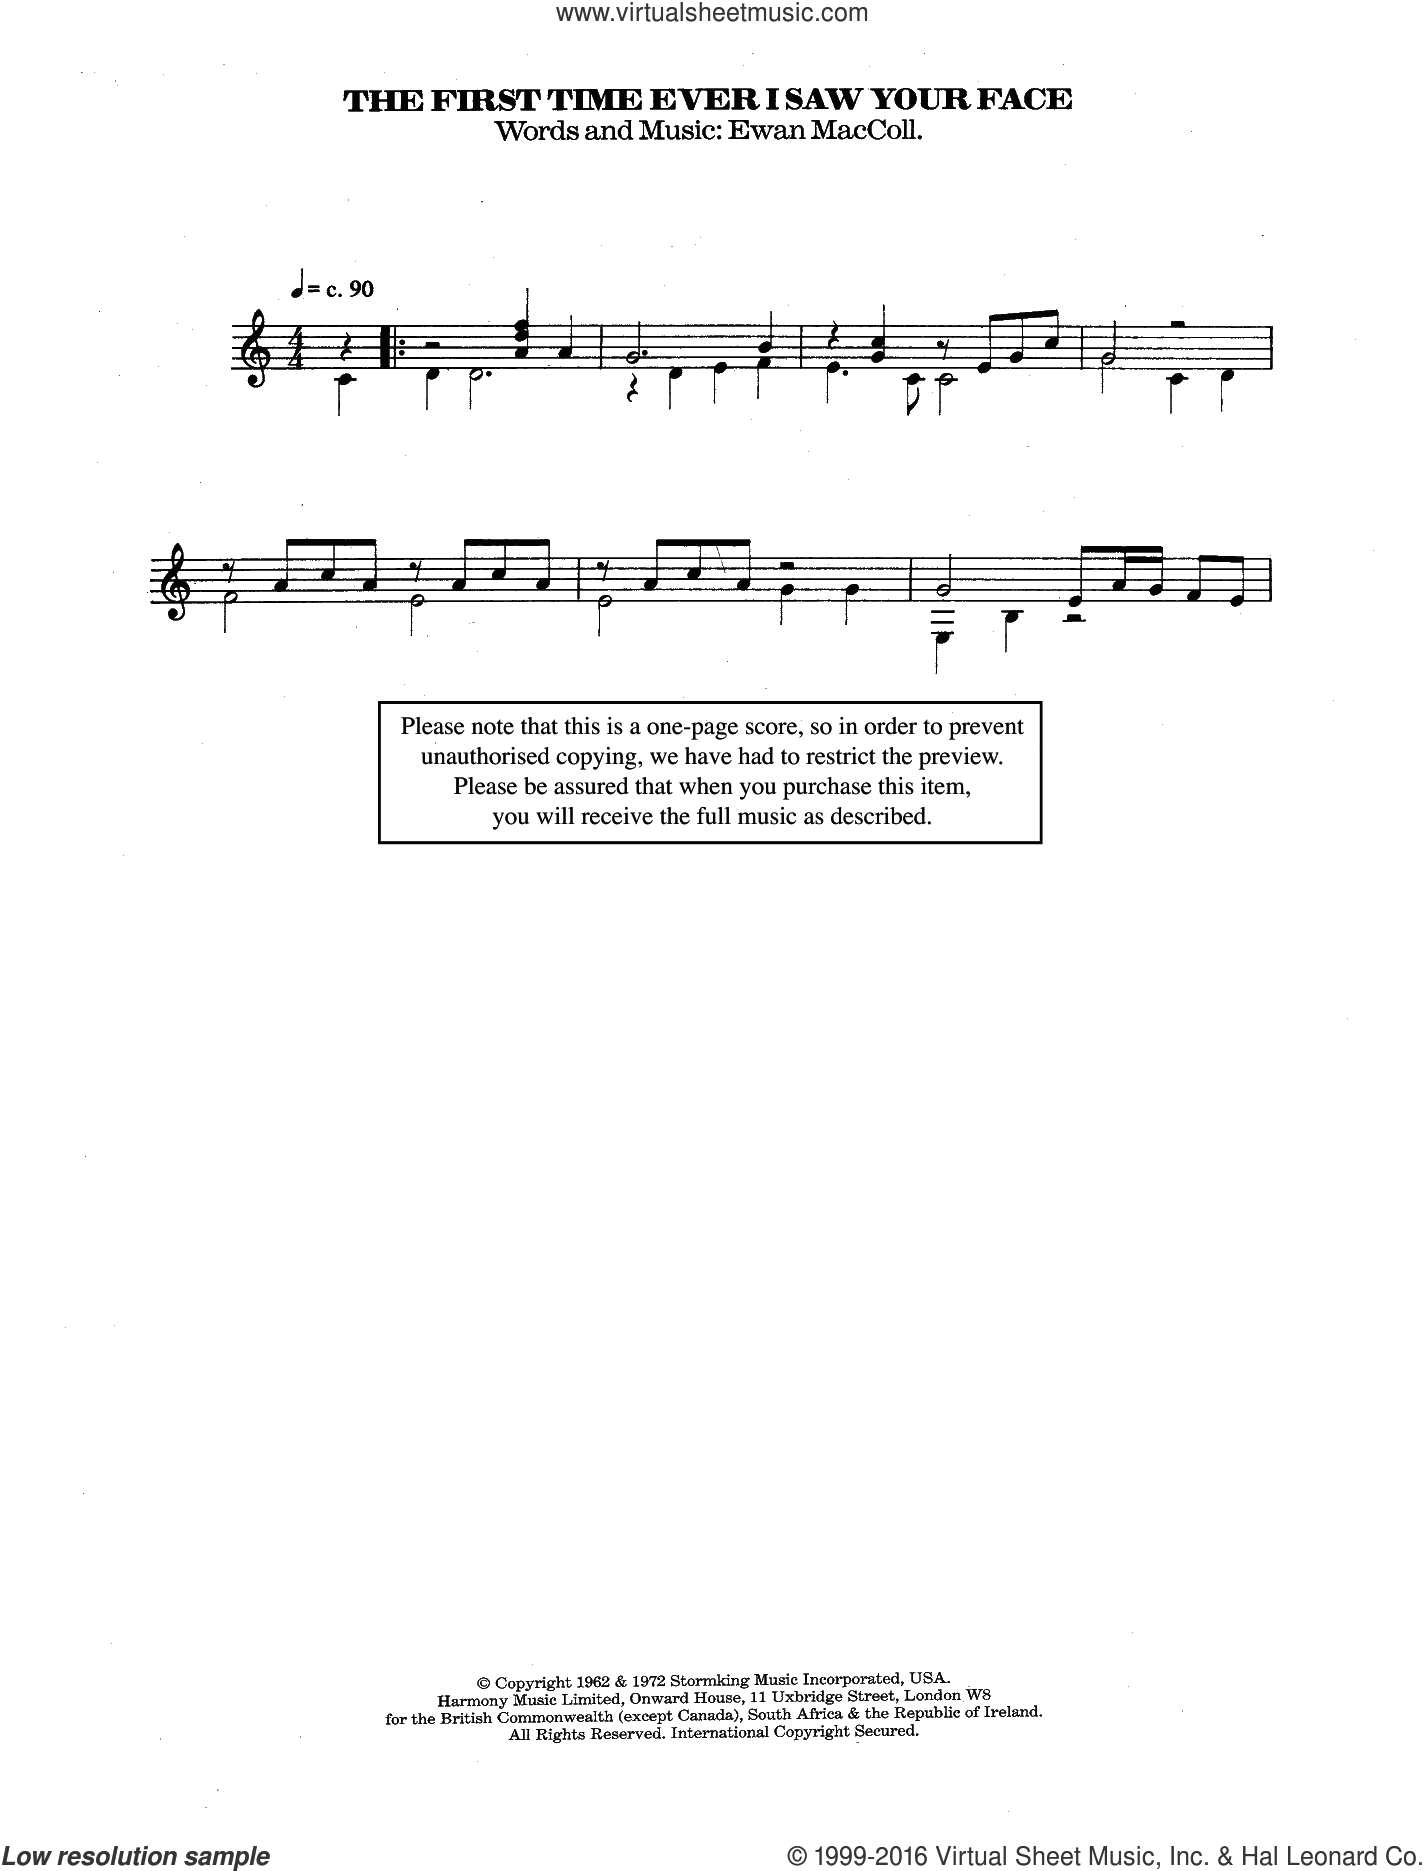 The First Time Ever I Saw Your Face sheet music for guitar solo (chords) by Roberta Flack, Alison Moyet and Ewan MacColl, classical score, easy guitar (chords)